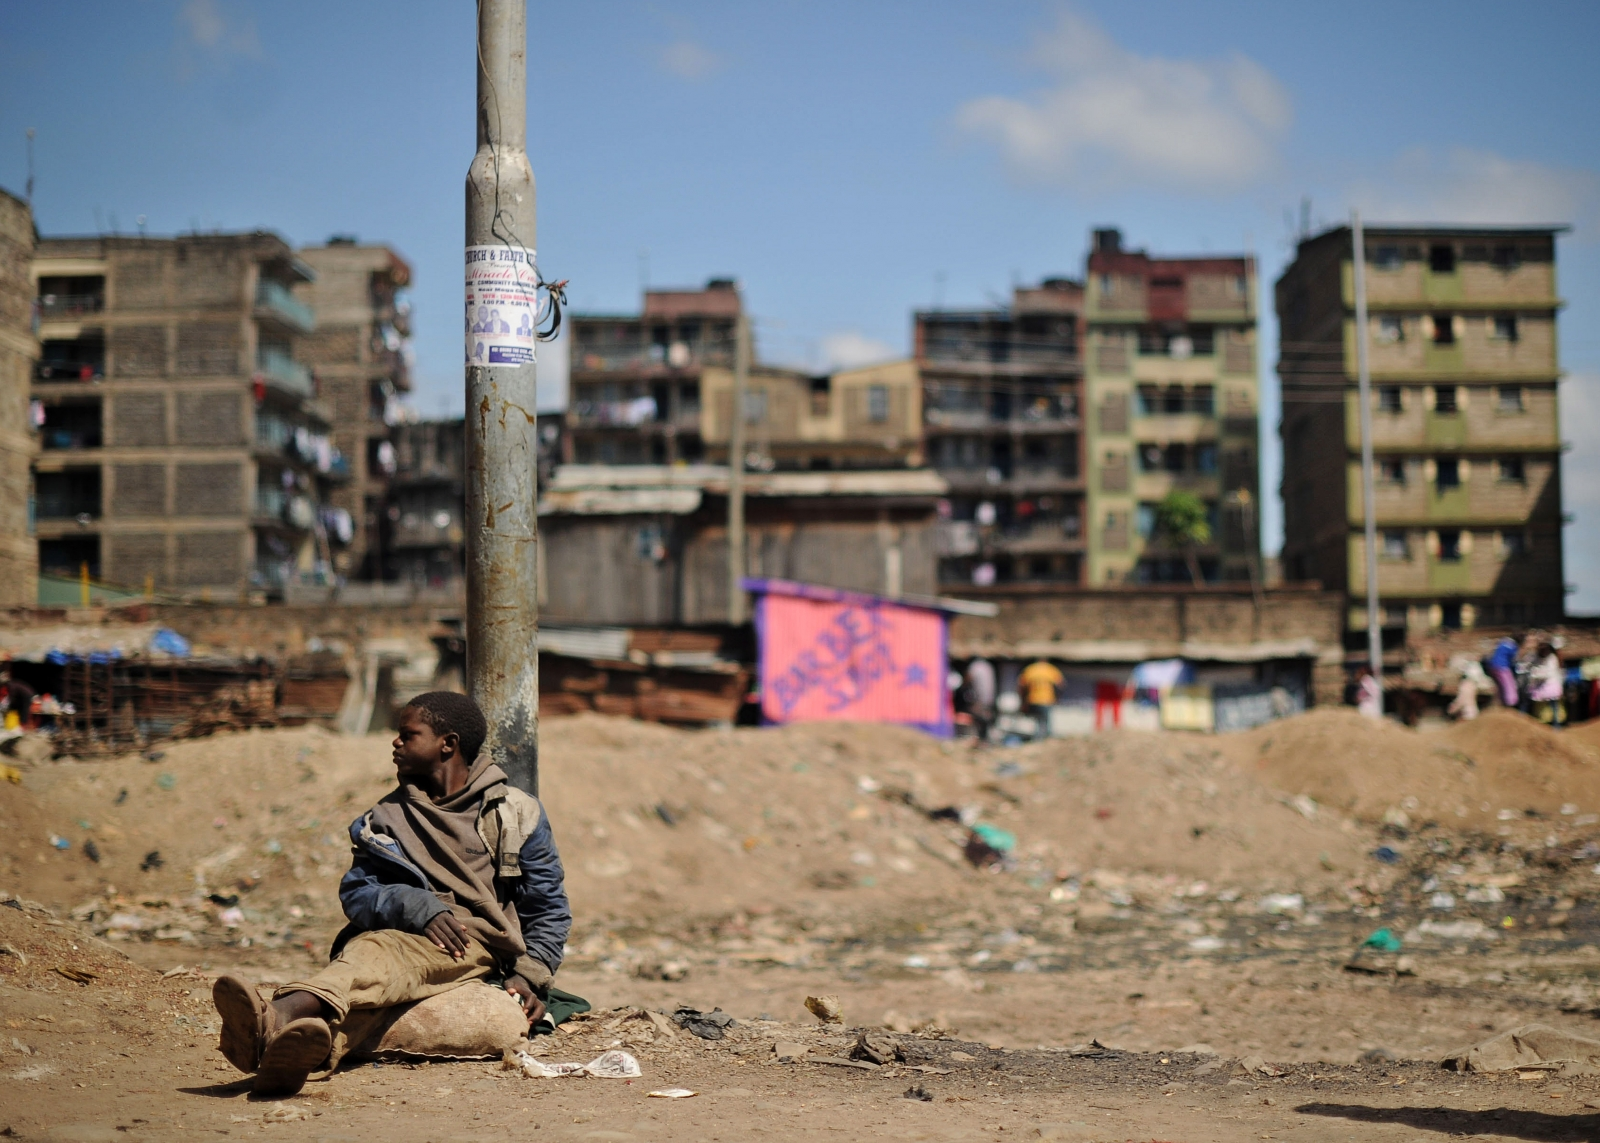 Kenya's street children